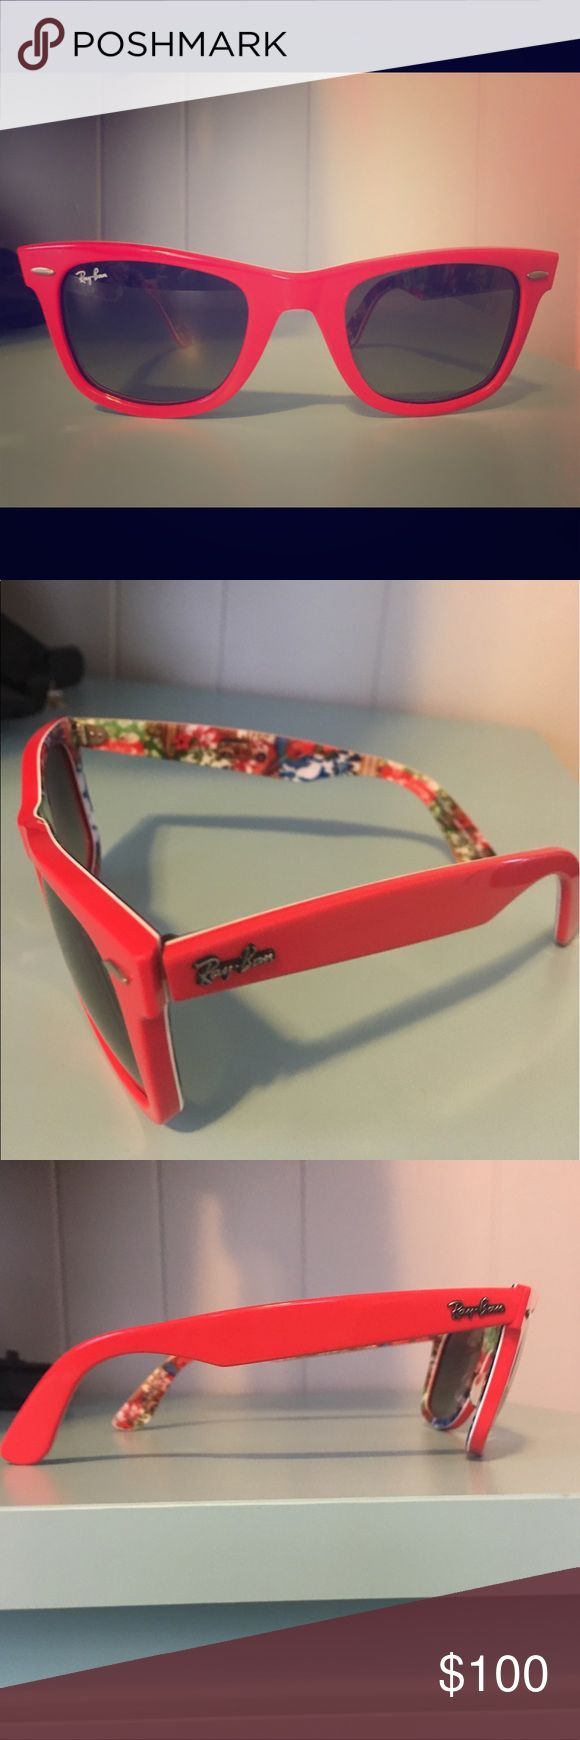 Ray Ban Wayfarer Rare Print! Awesome and authentic, red Ray Ban Wayfarers from the Rare Print series! Sleek red glasses with floral print on the inside, no scratches and original case is included! Feel free to make me an offer! ❤️ Ray-Ban Accessories Sunglasses